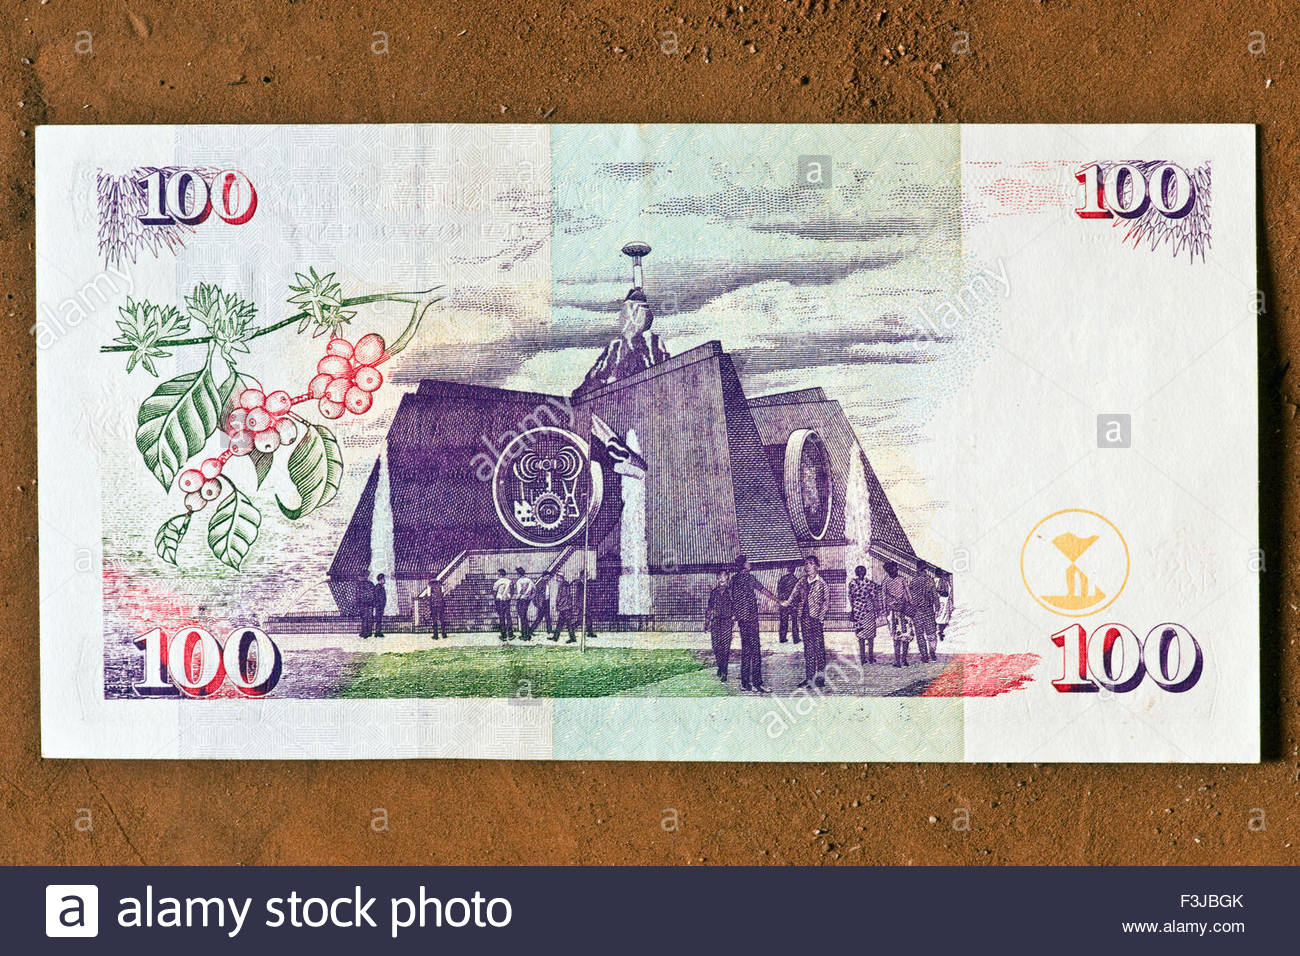 African Money Kenya Shilling Cash Kenya Africa Banknotes Stock Photo